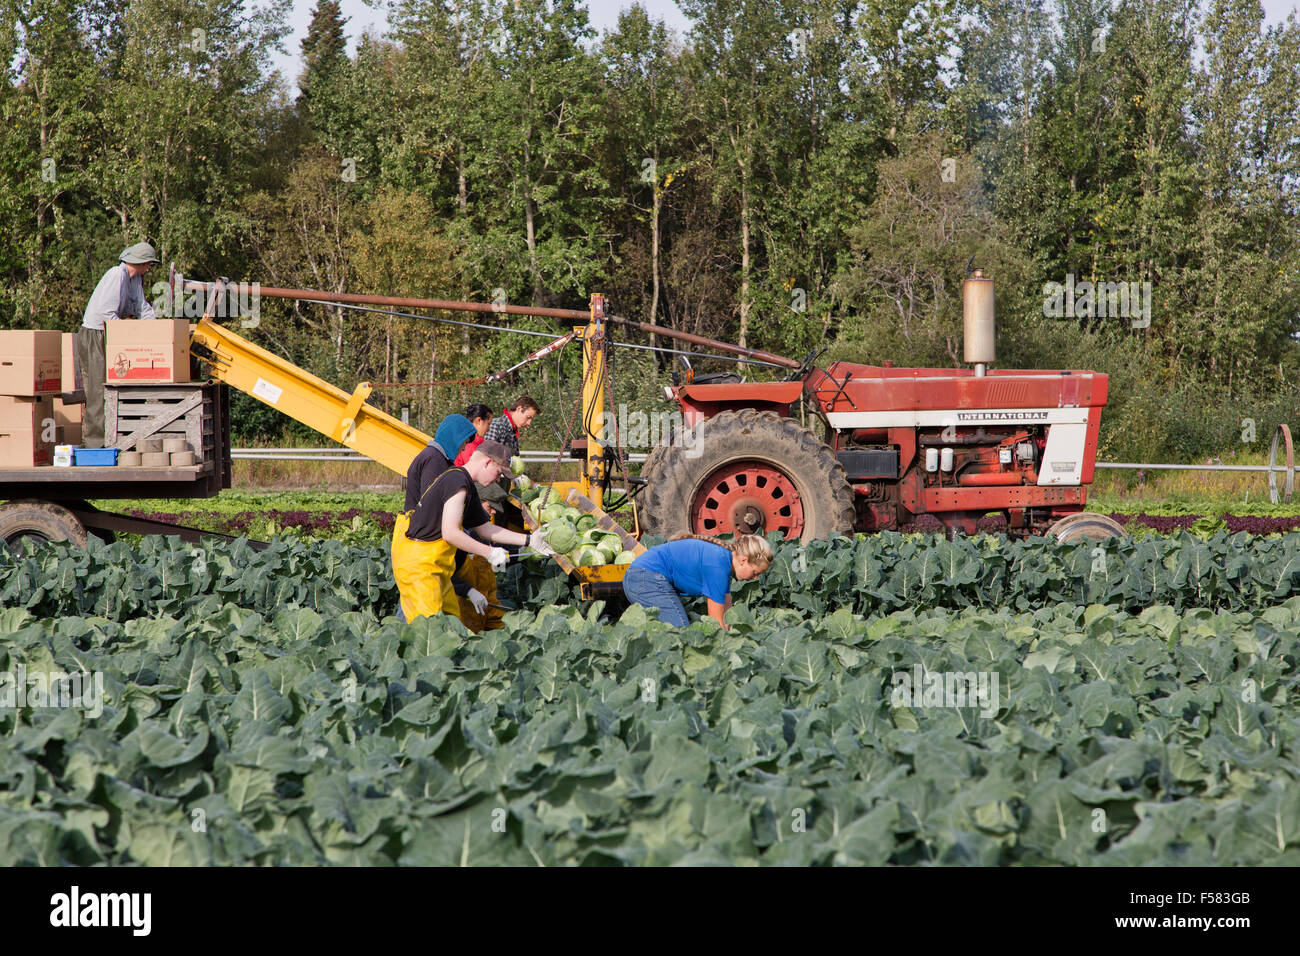 Farm workers harvesting White Cabbage 'Brassica oleracea' . - Stock Image